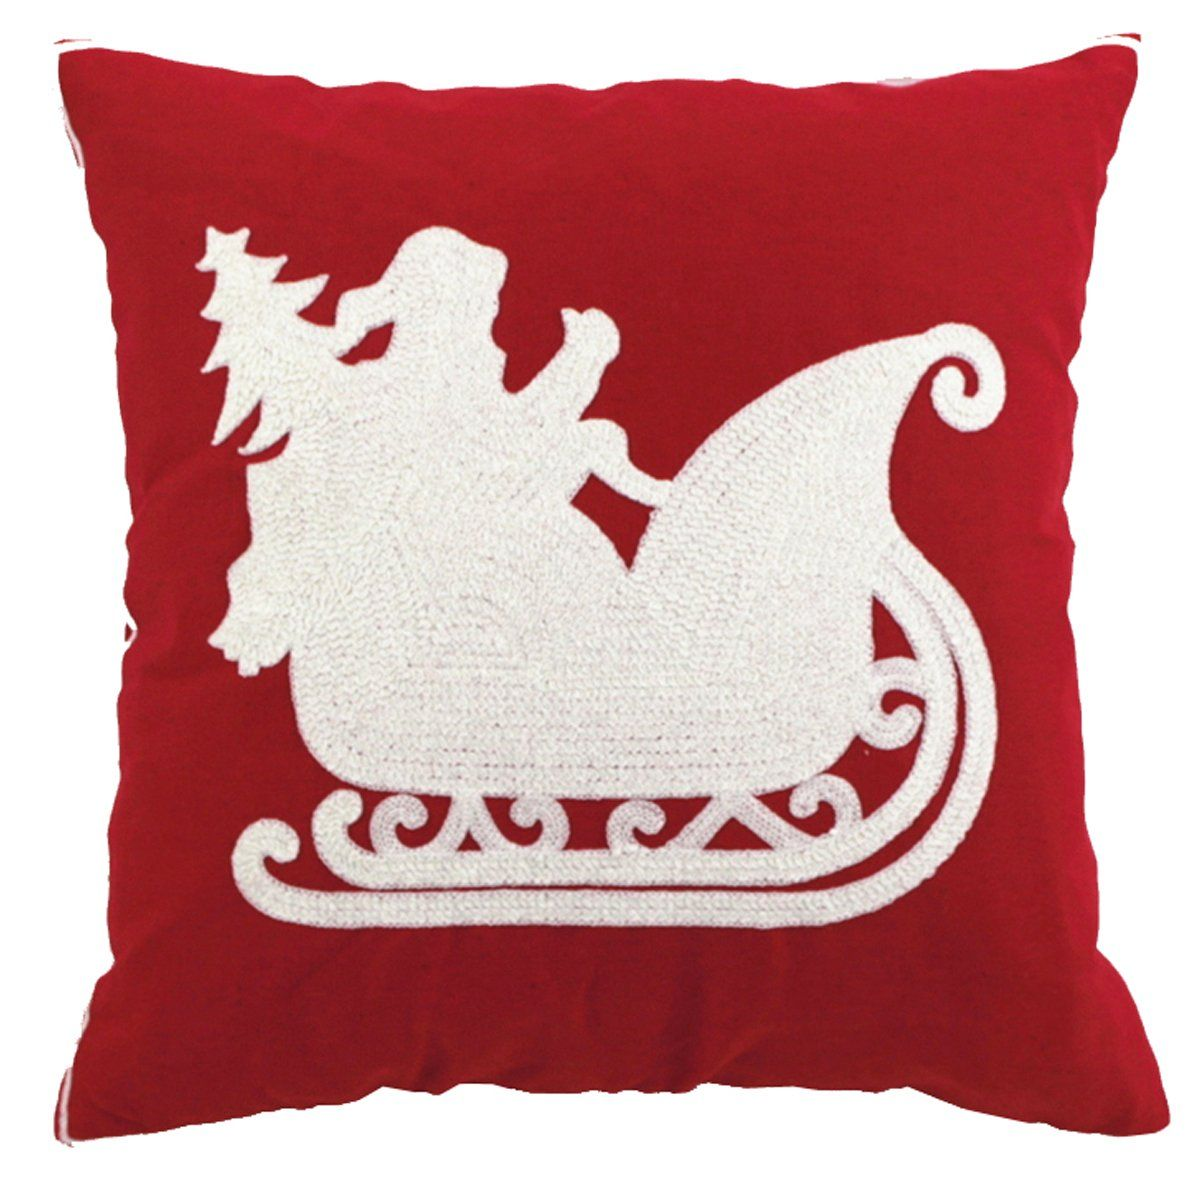 Sykting Christmas Pillow Covers for